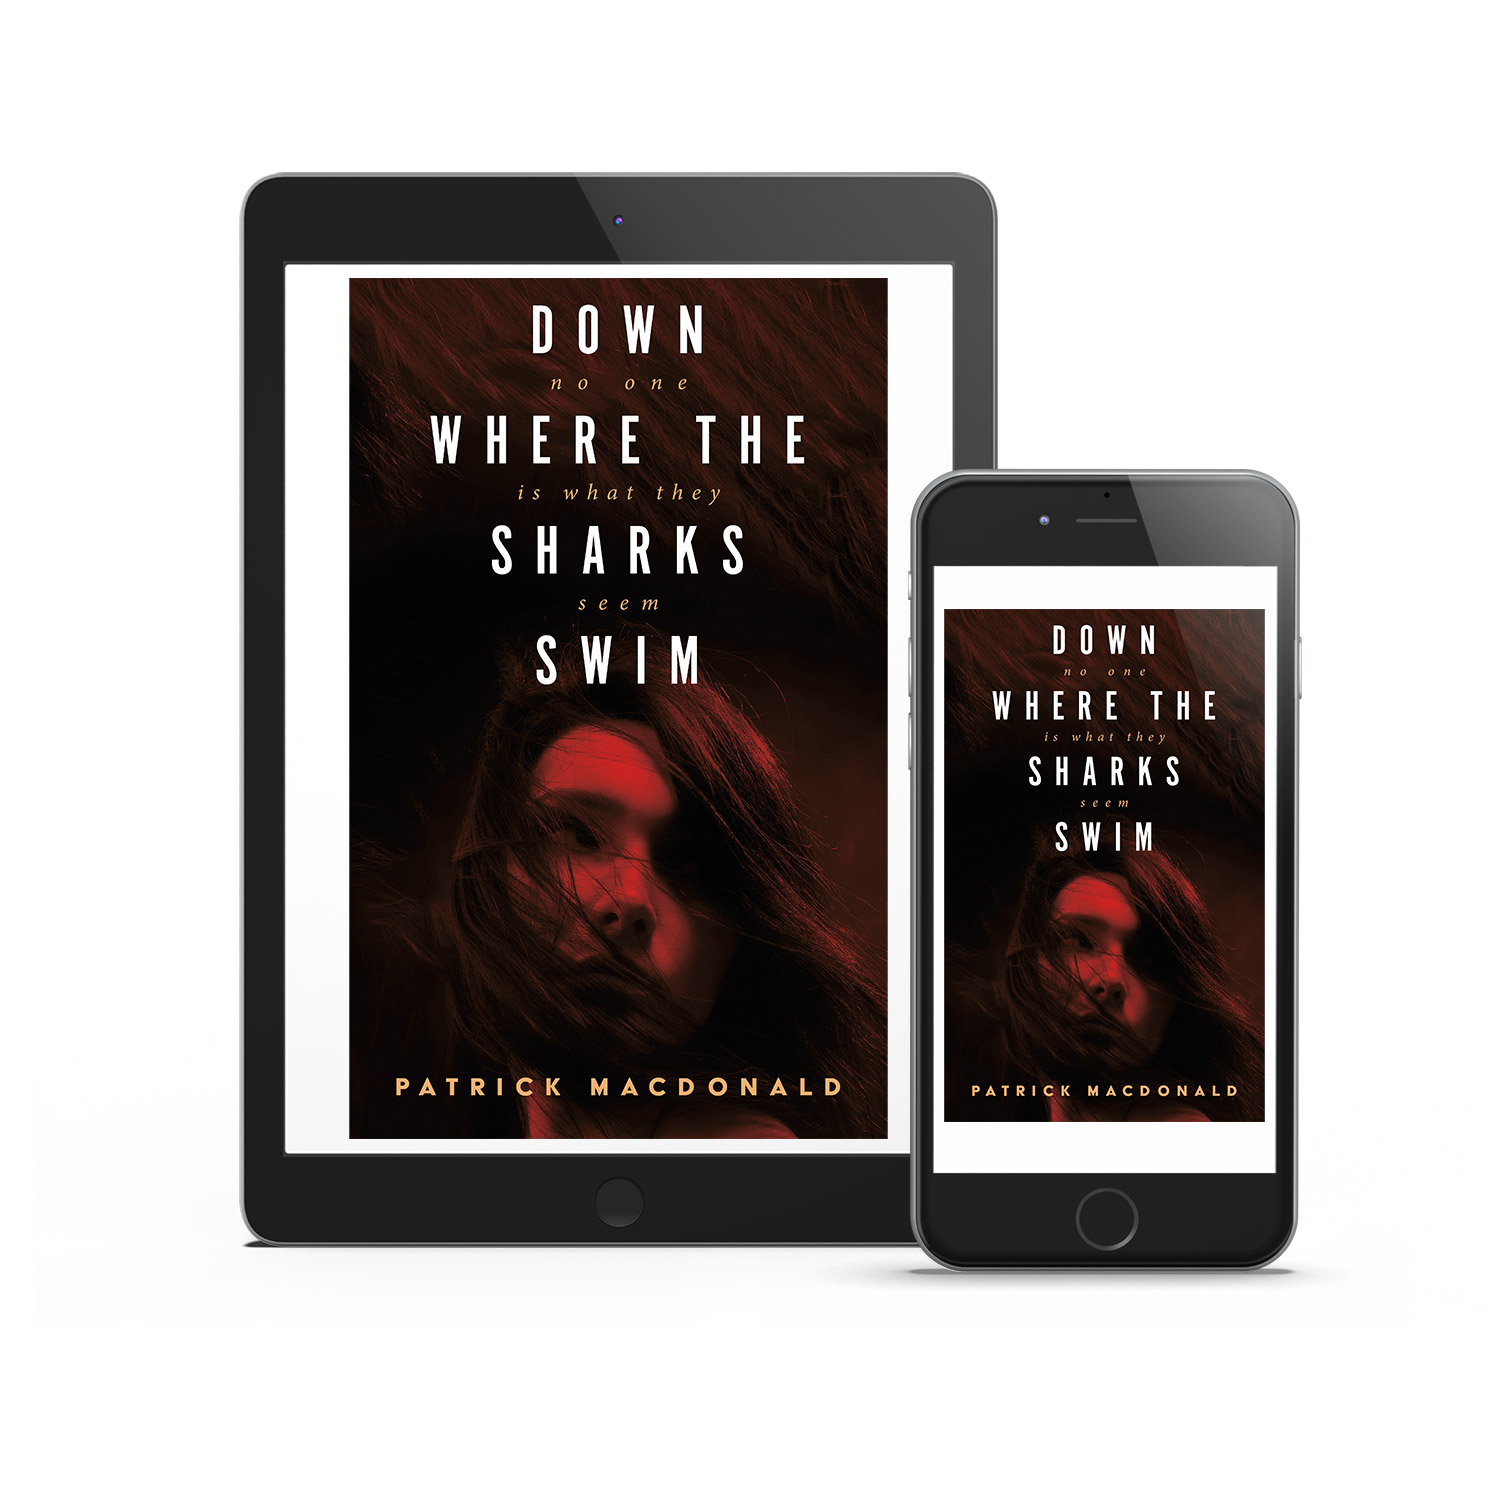 'Down Where The Sharks Swim' is a London set, female-focussed novel. The author is Patrick MacDonald. The book cover design and interior formatting are by Mark Thomas. To learn more about what Mark could do for your book, please visit coverness.com.